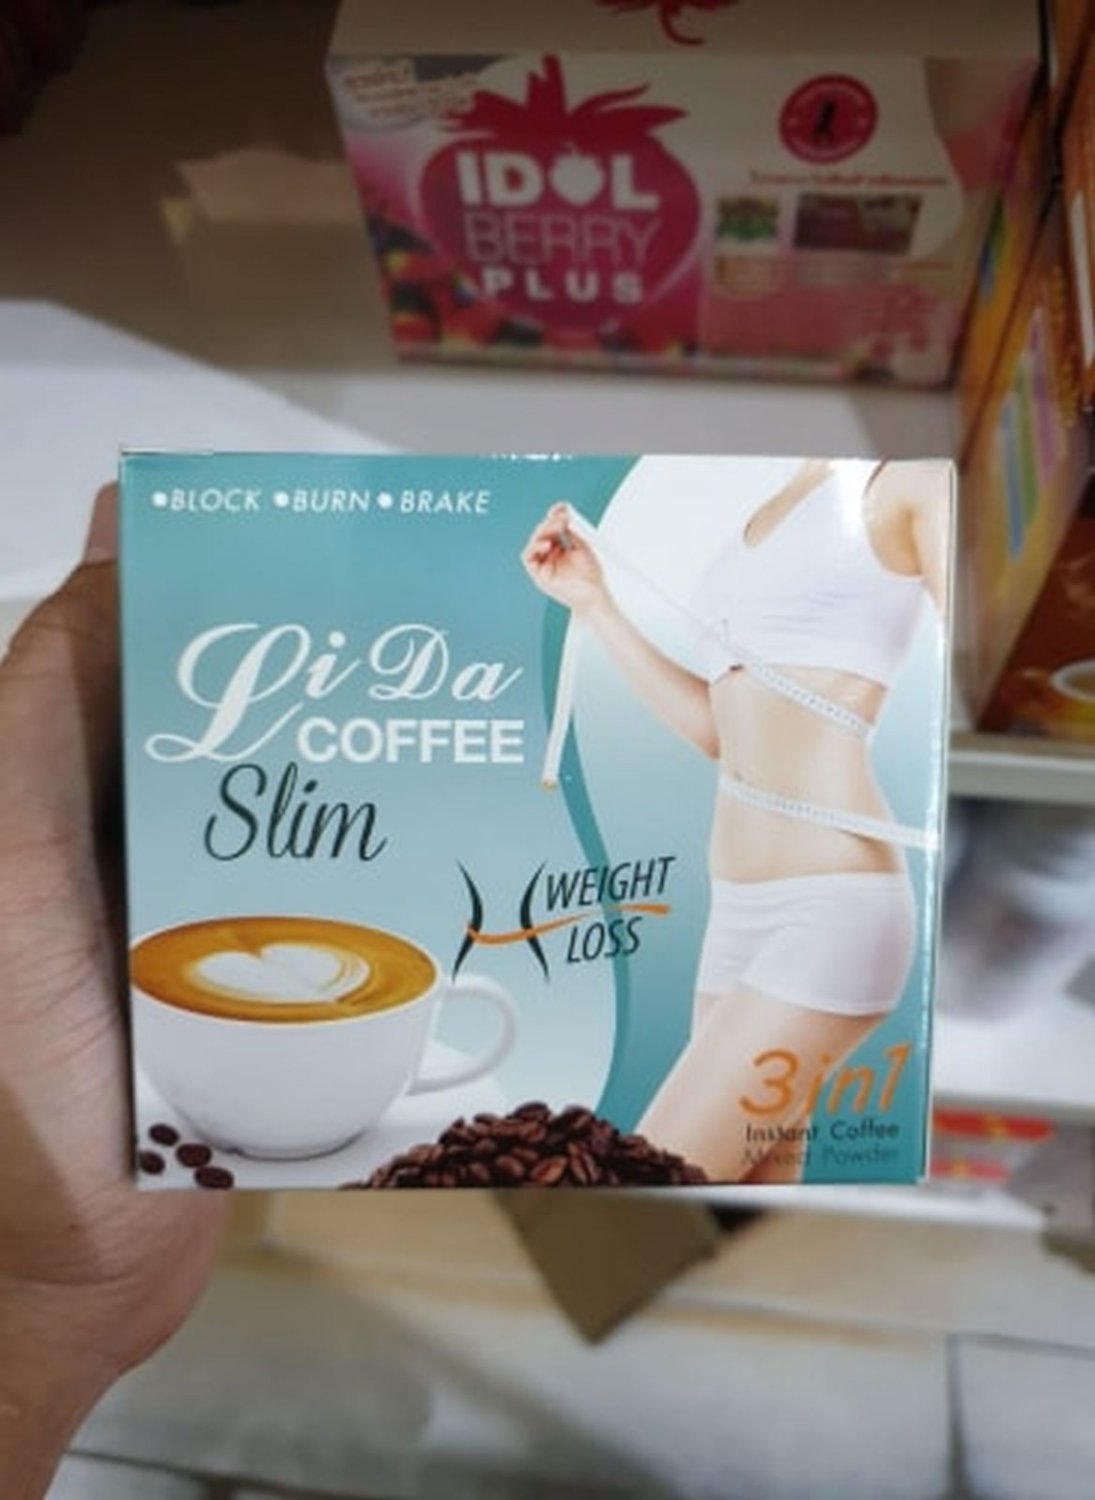 Lida Coffee 3 In1 Slim Weight Loss Firming Supplement Products 10 Sachets